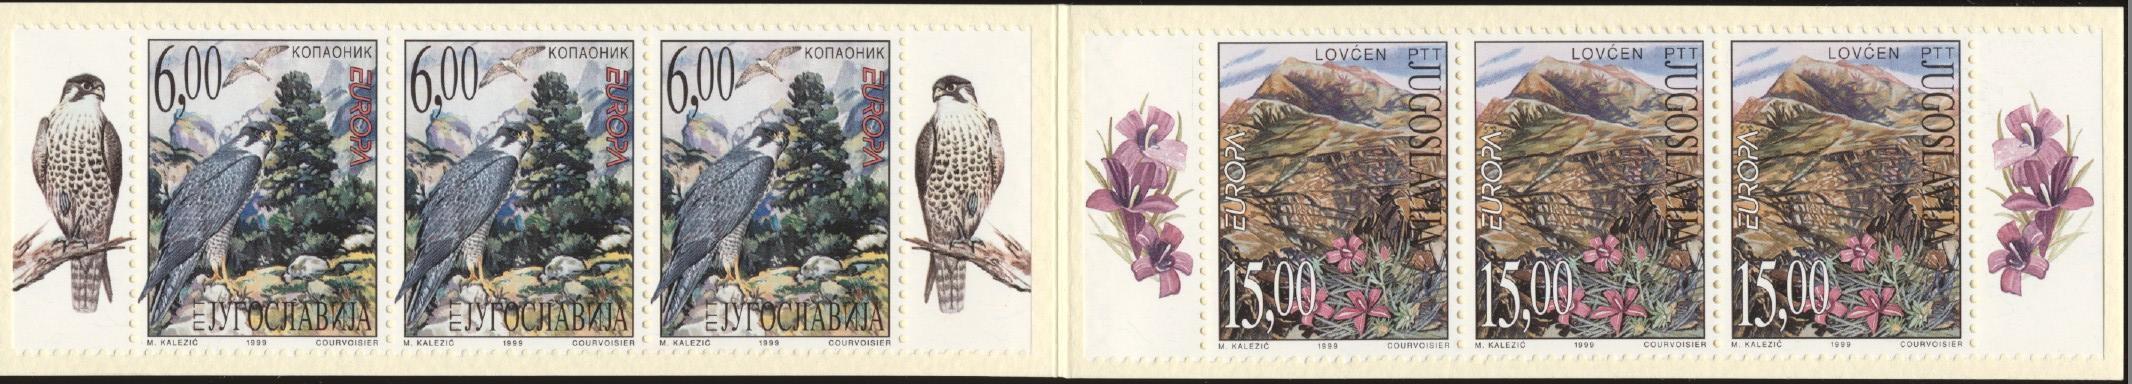 Stamps with Flowers, Bird of prey from Yugoslavia (image for product #250954)